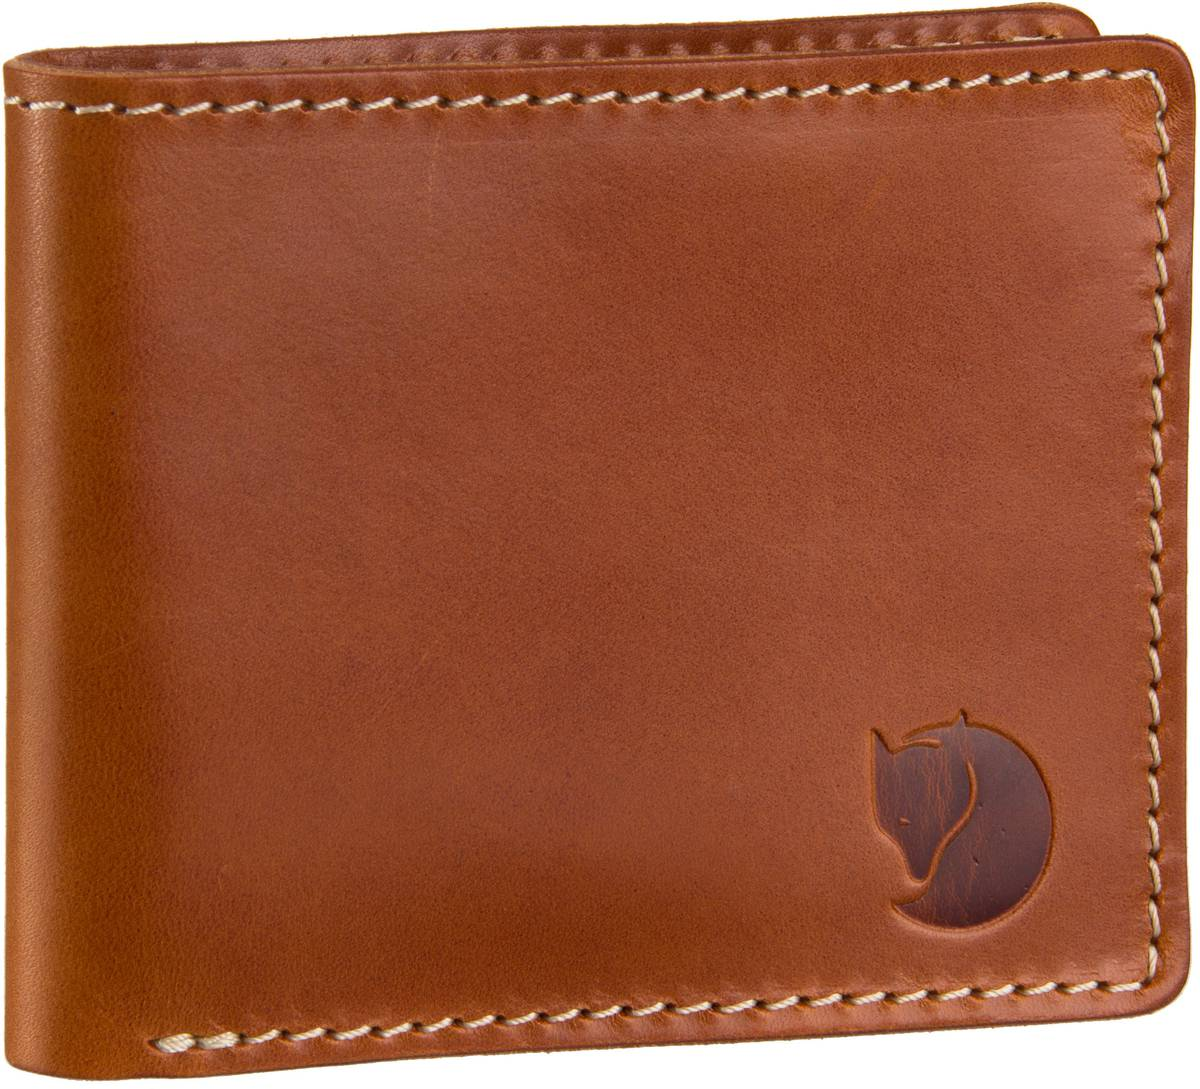 Fjällräven Övik Wallet Leather Cognac - Briefta...